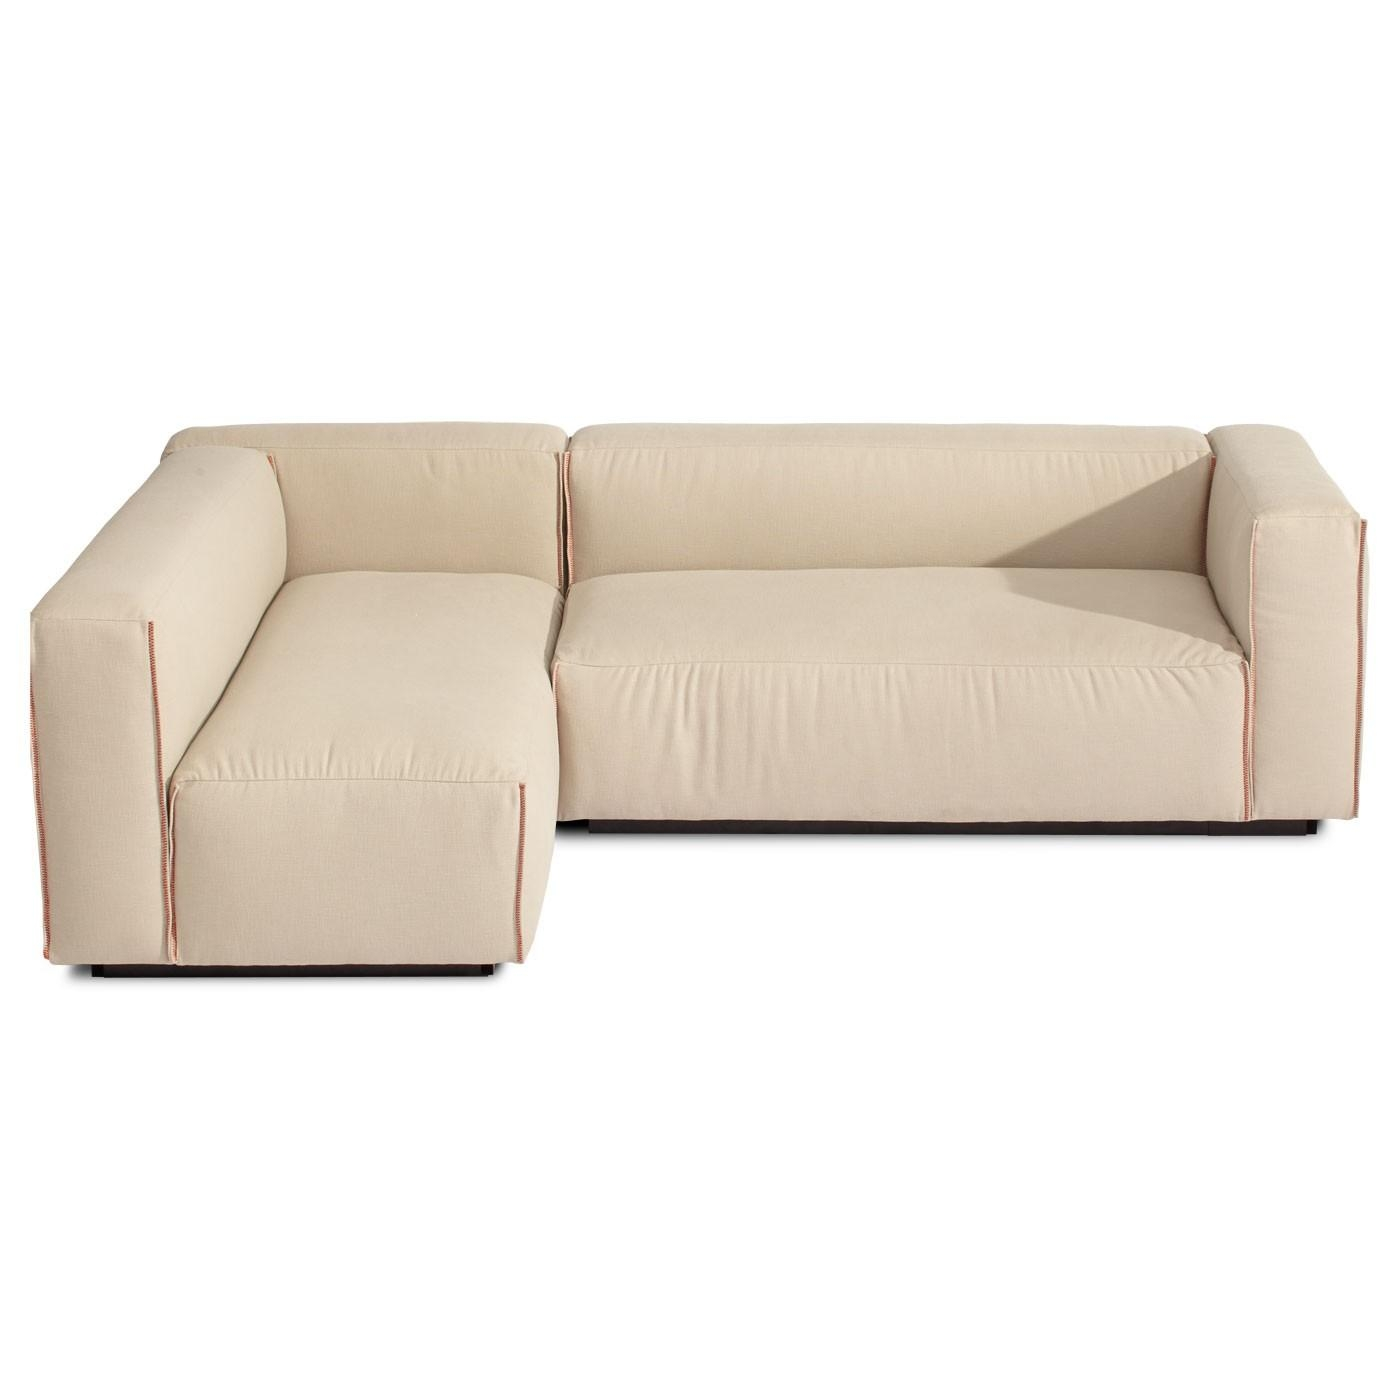 Small Armless Sectional Sofas (Image 13 of 15)